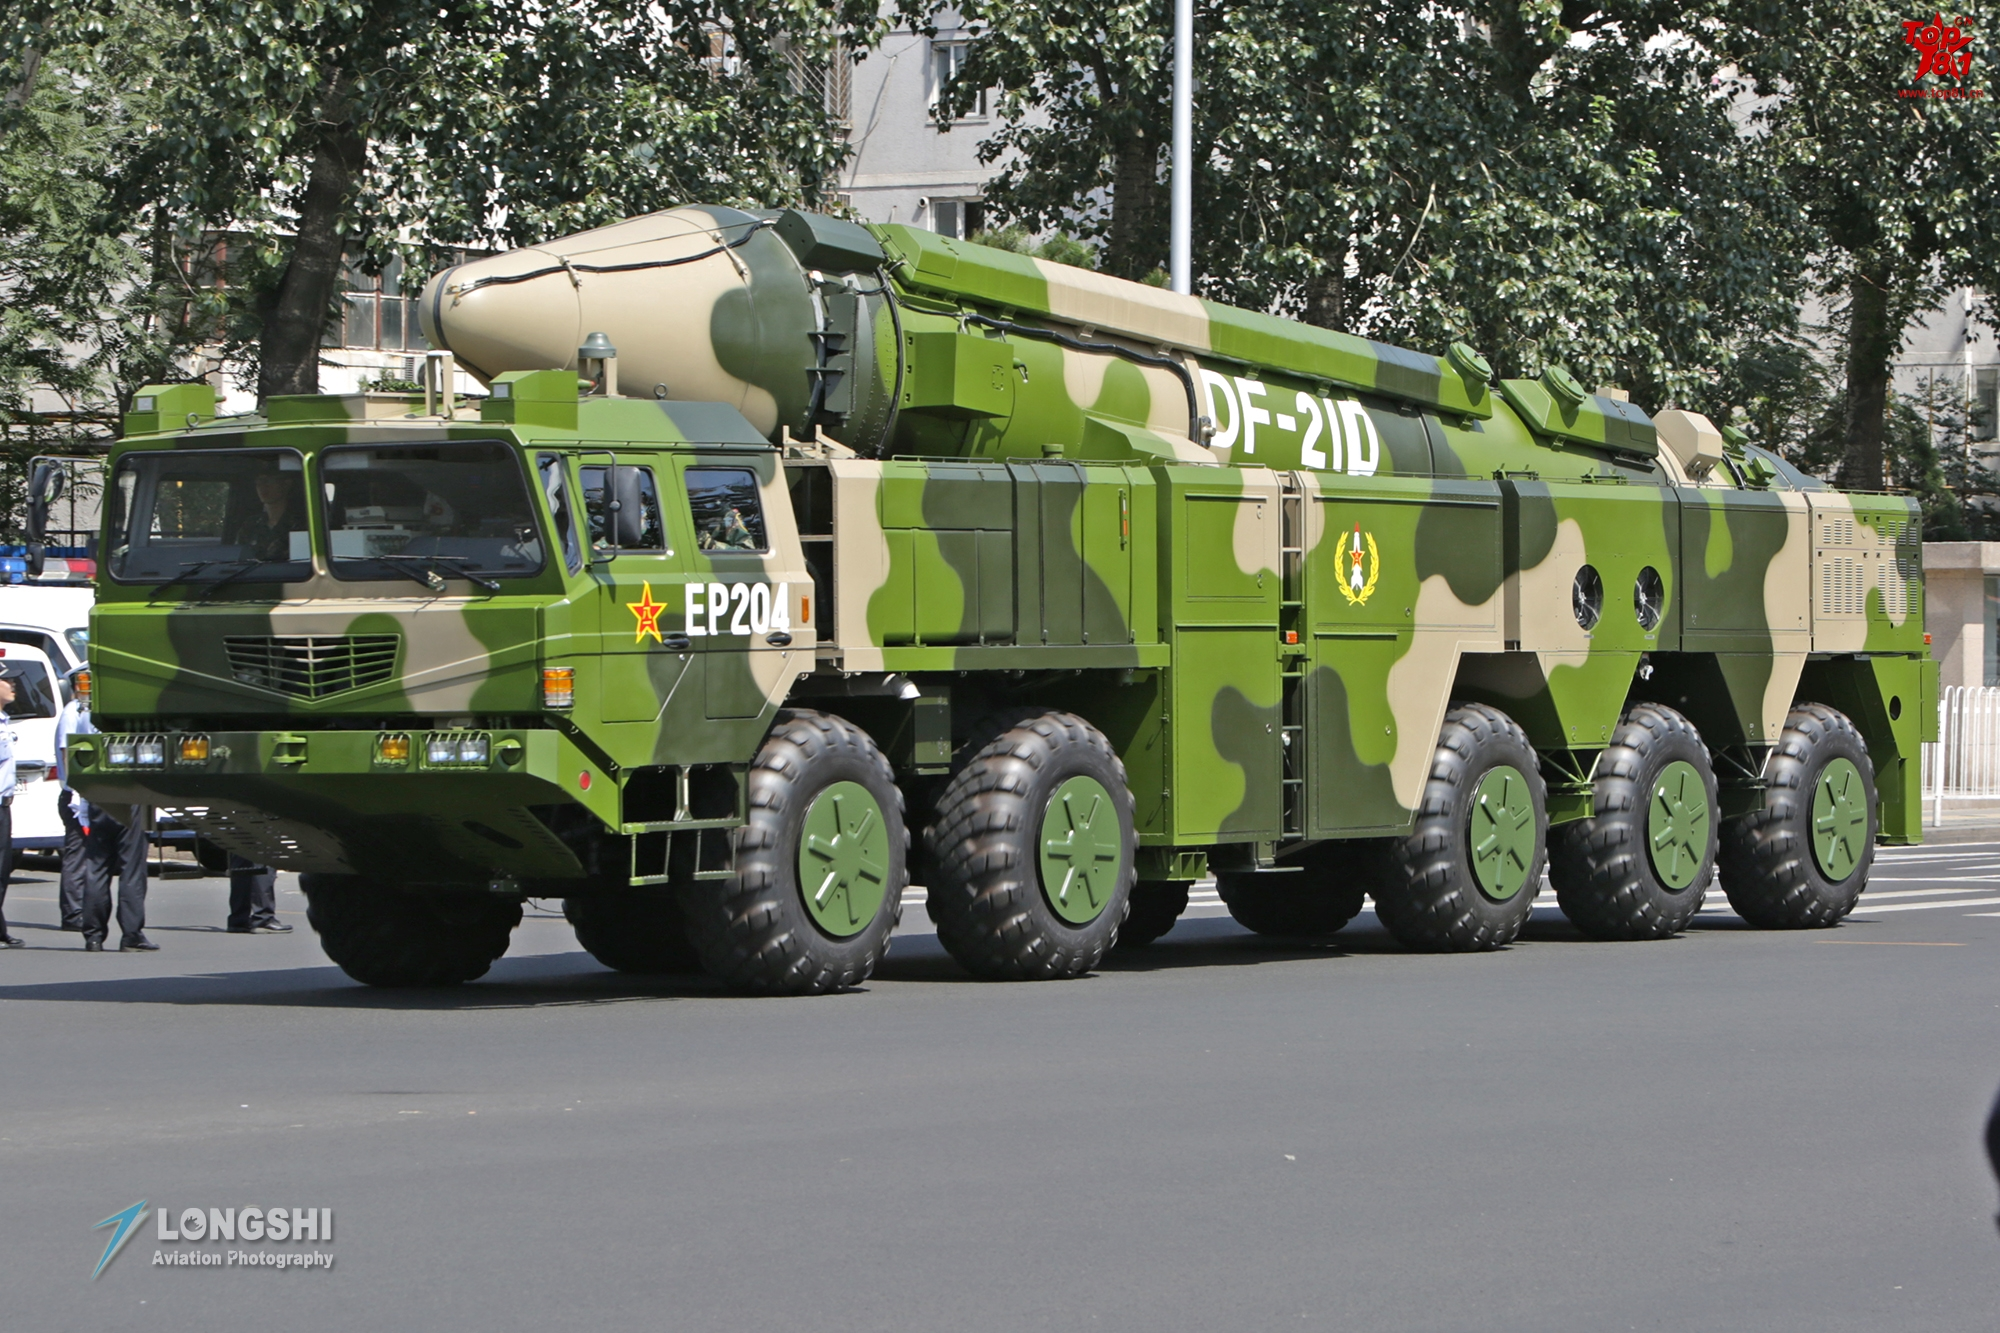 Chinese PLA DF-21D ASBM on mobile launch vehicle.